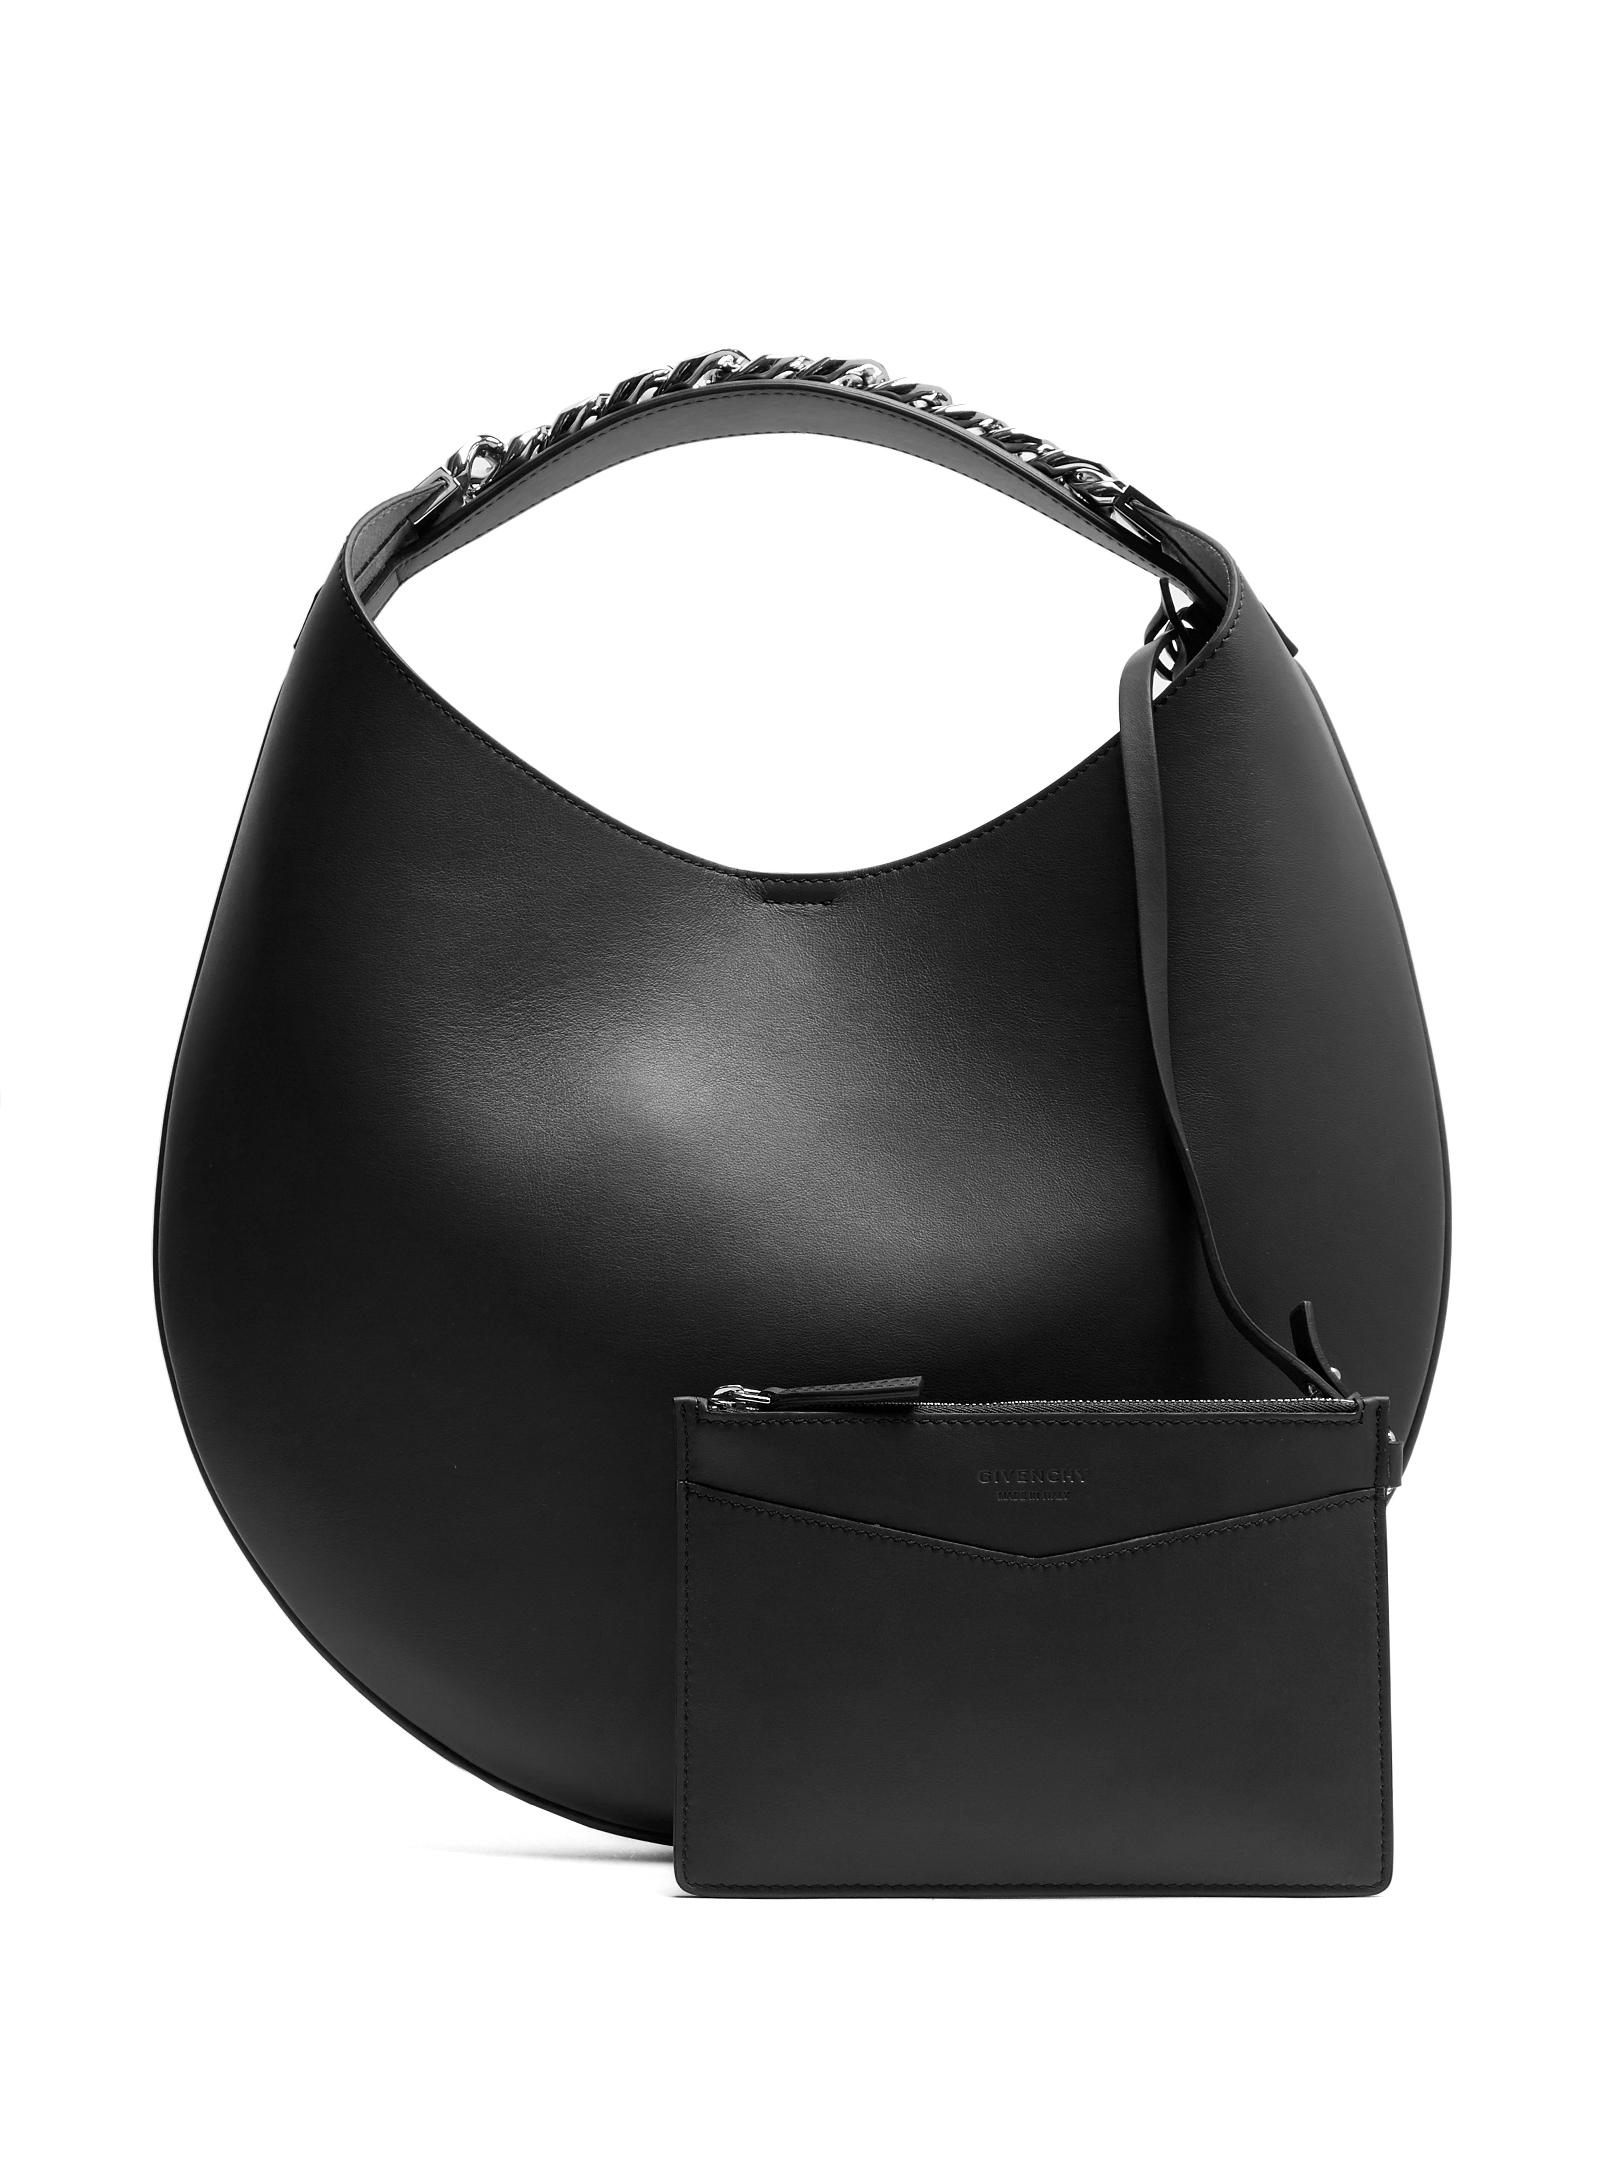 551f880c9881 Lyst - Givenchy Infinity Small Leather Chain Hobo Bag in Black